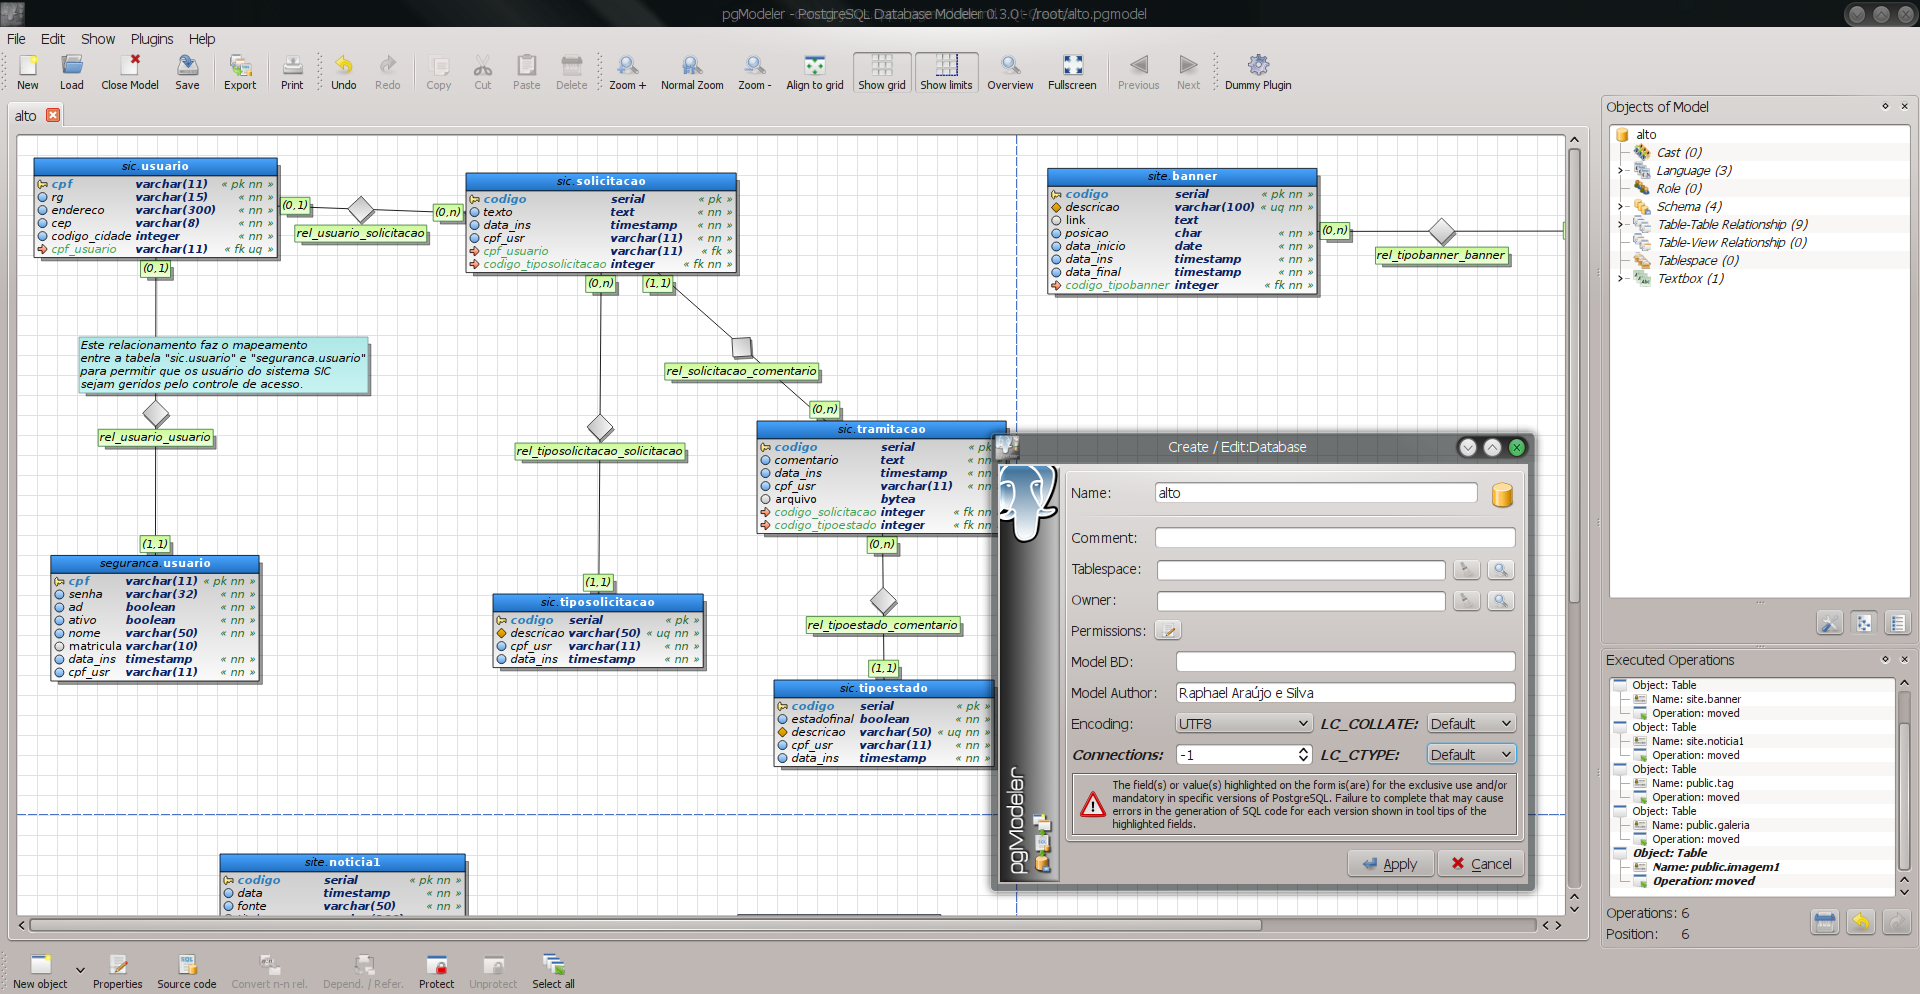 PostgreSQL Database Modeler screenshot 1